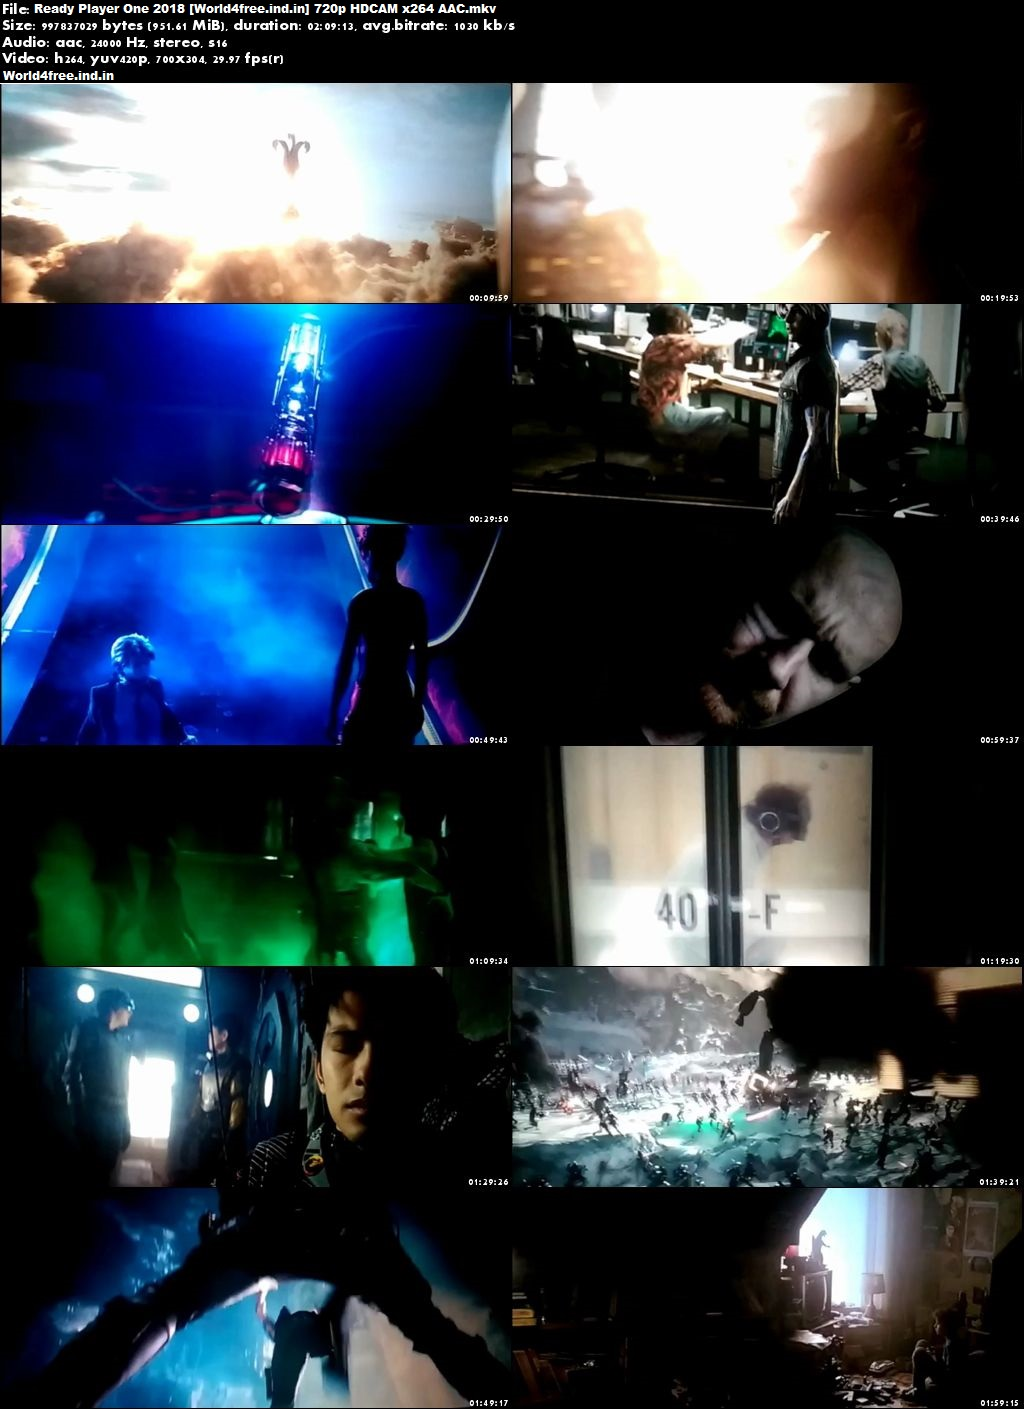 Ready Player One 2018 Full Hollywood English Movie Download HDCAM world4freeus